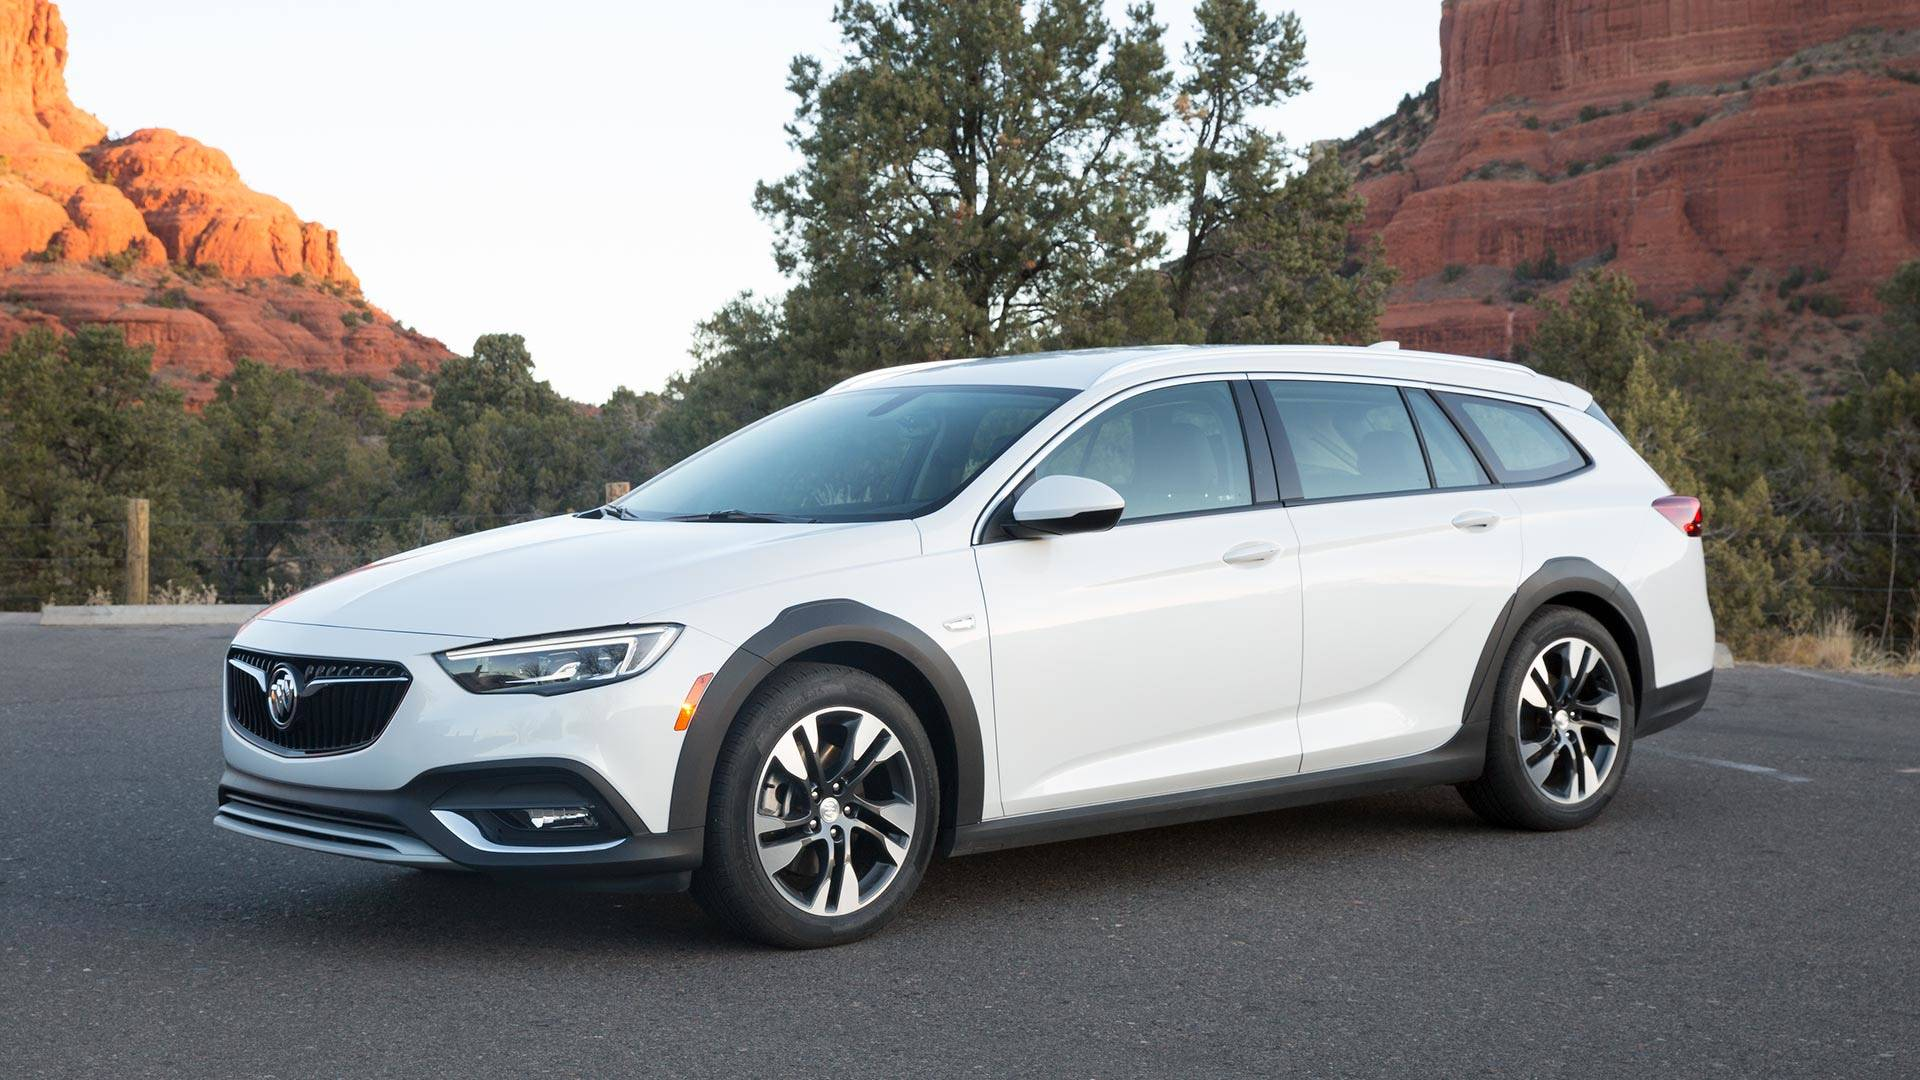 Cancelled Buick Regal TourX Gets Big Discount Through End Of Year